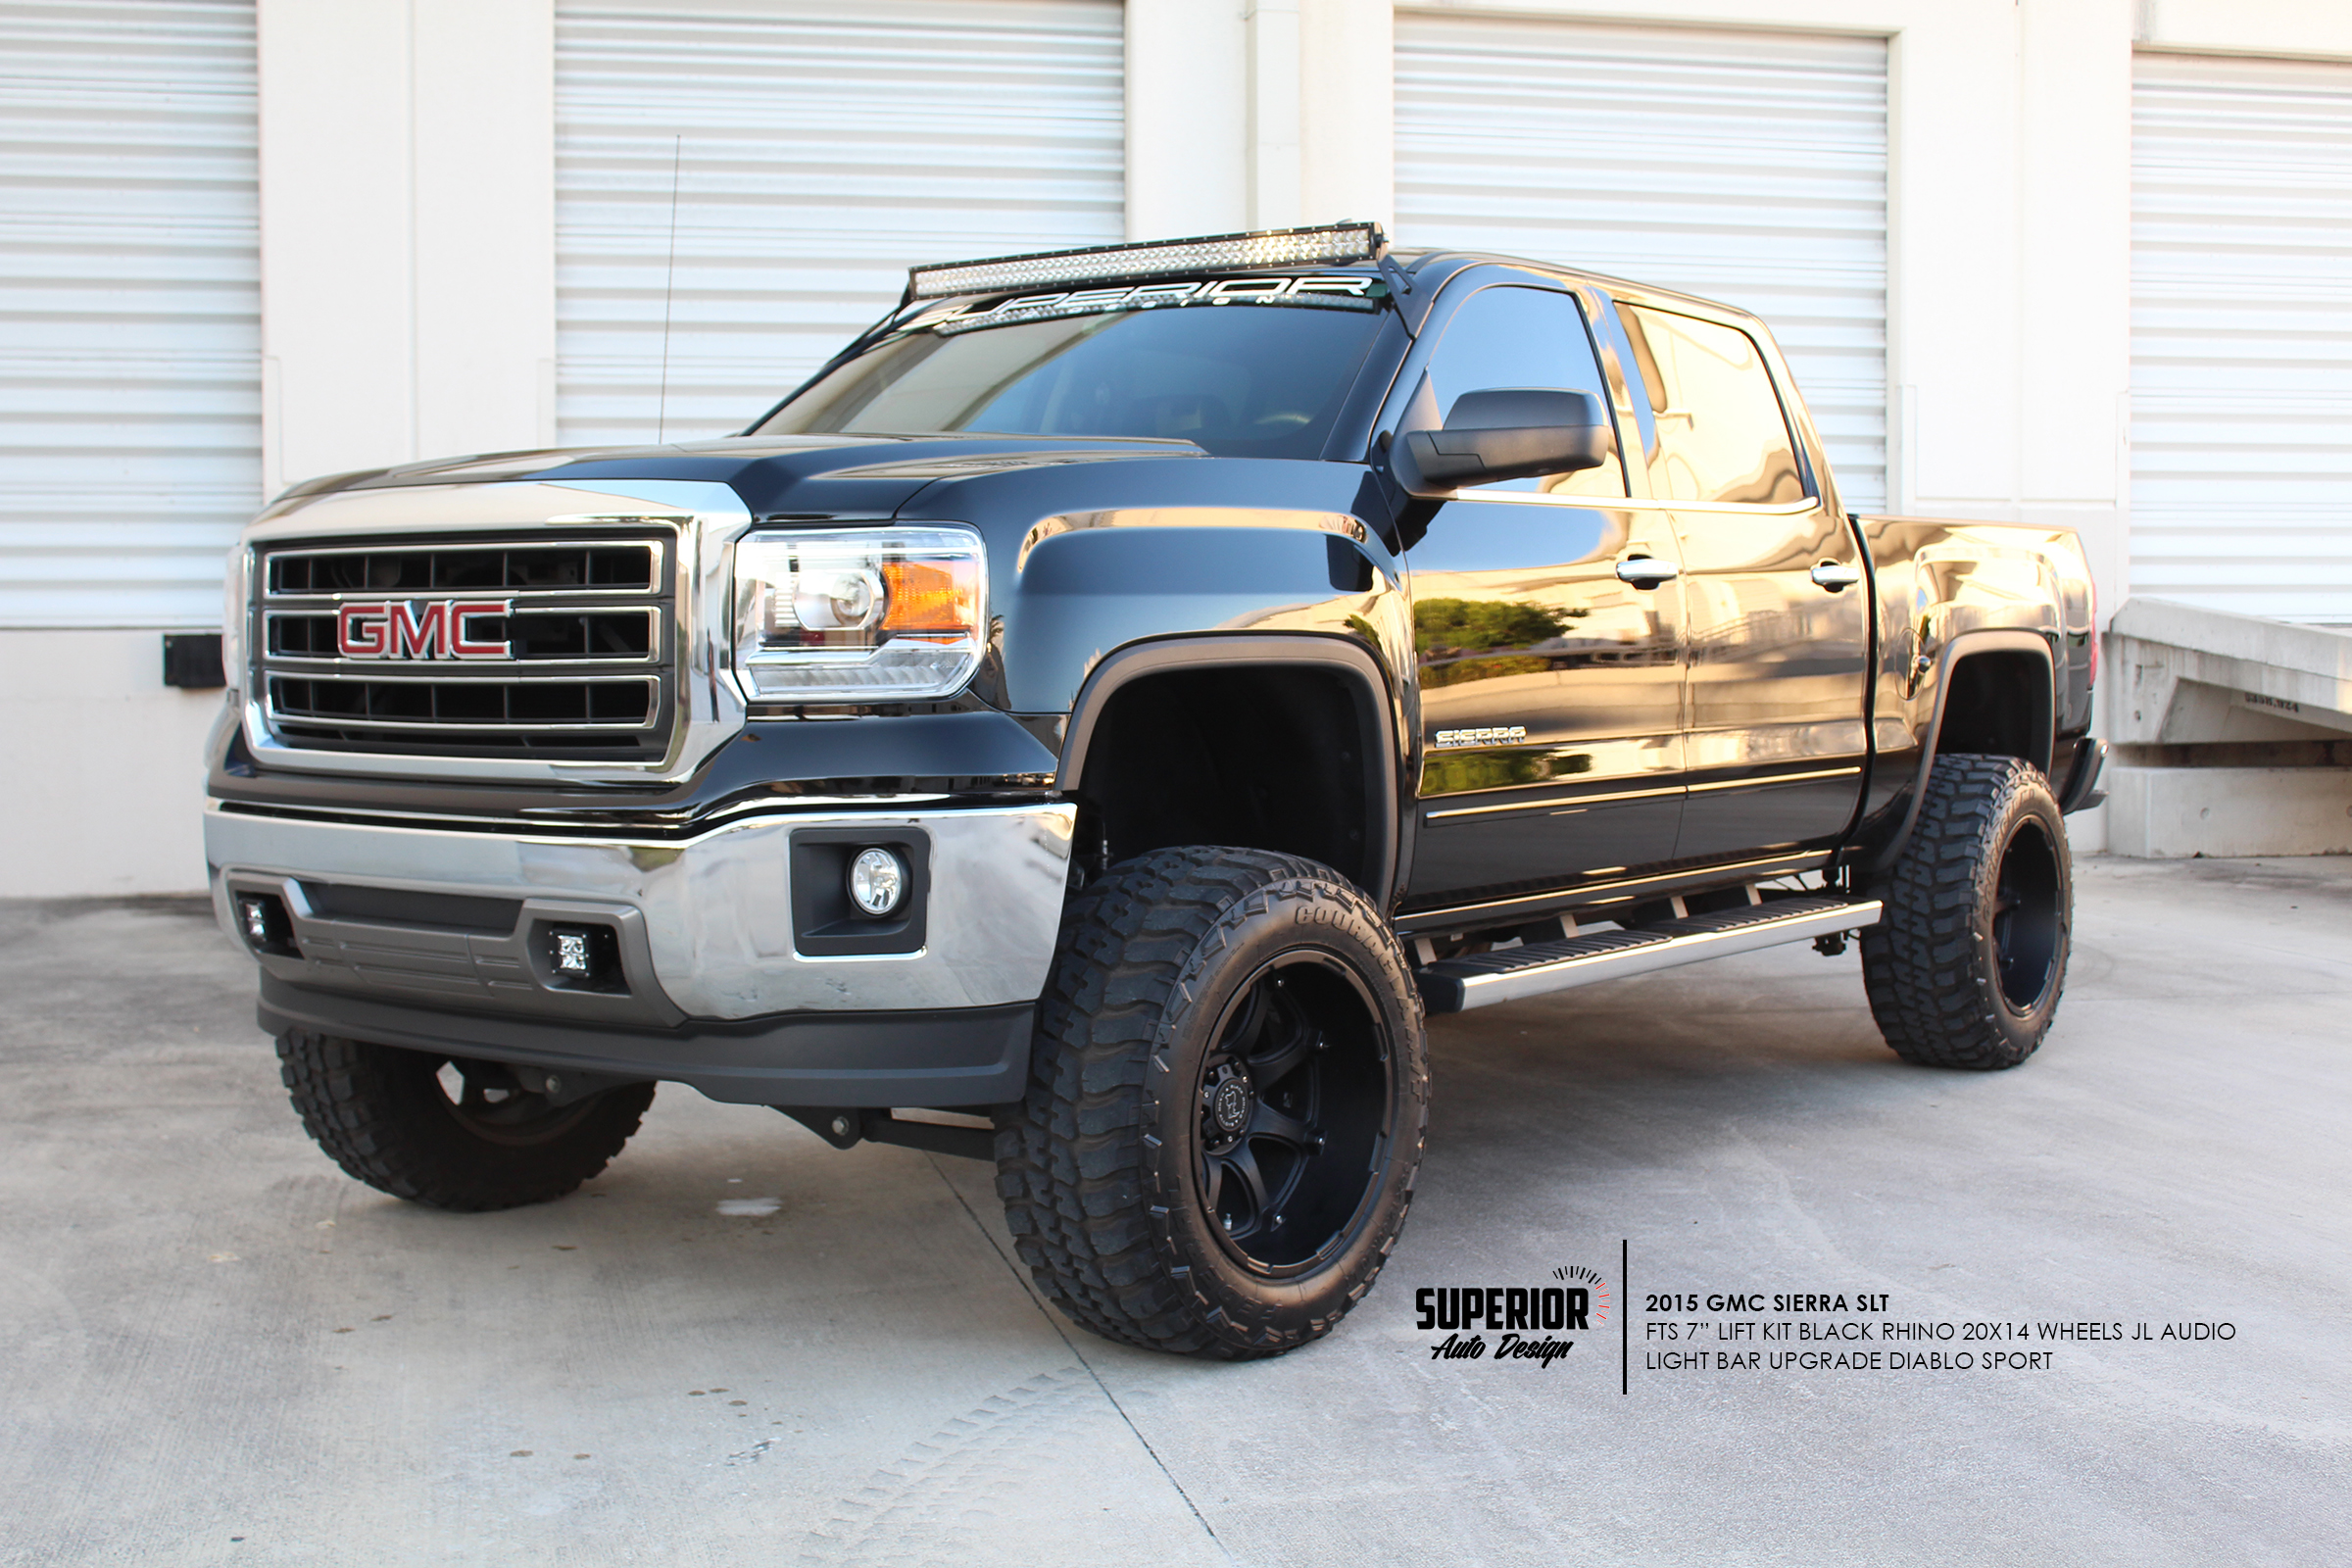 GMC LIFTED TRUCK SUPERIOR AUTO DESIGN 2